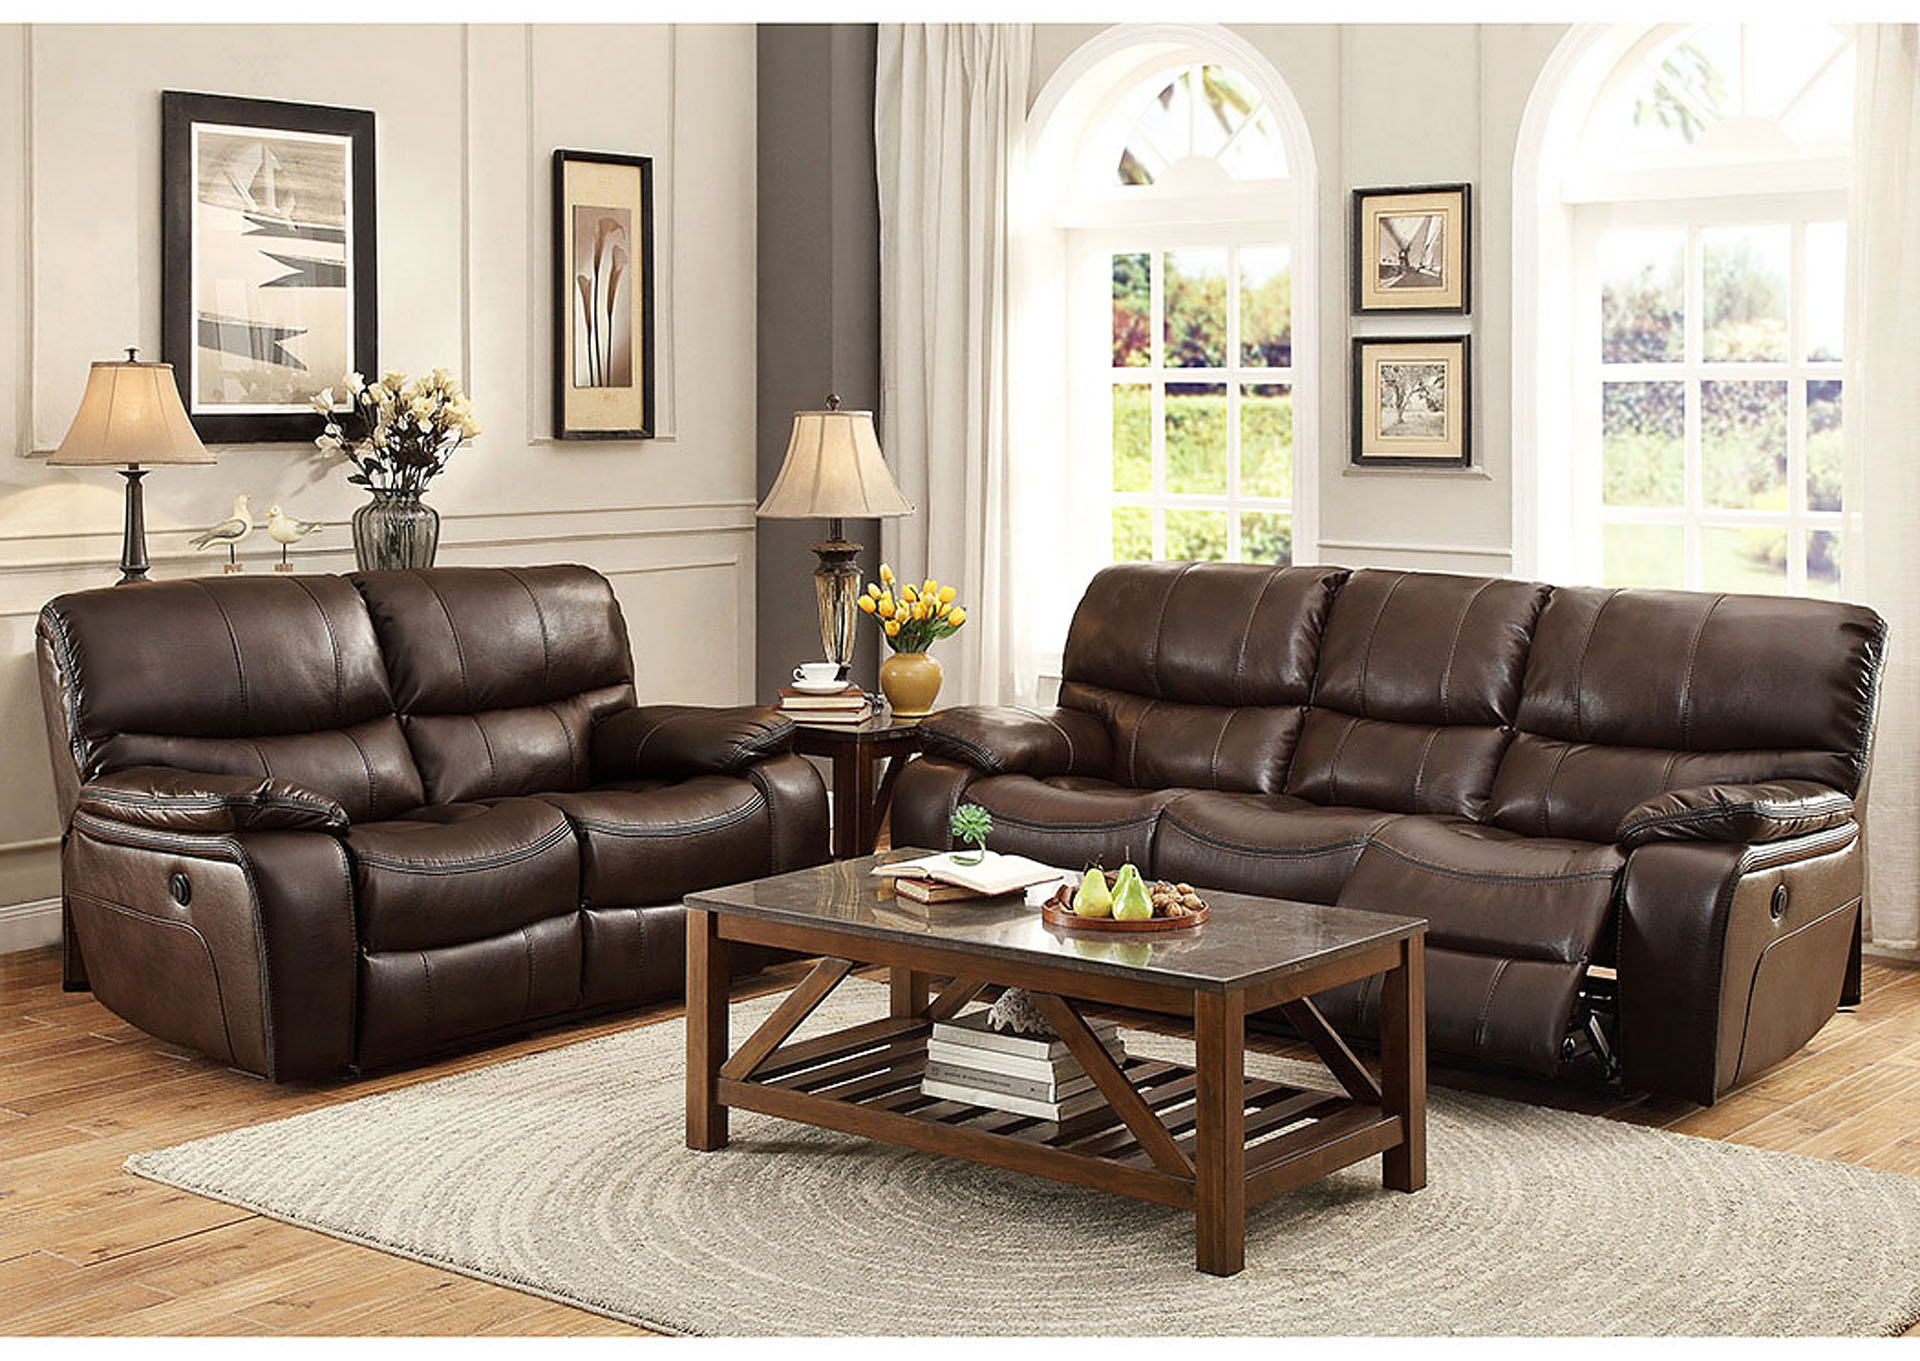 Aloha Furniture Pecos Brown Leather Power Double Reclining Sofa